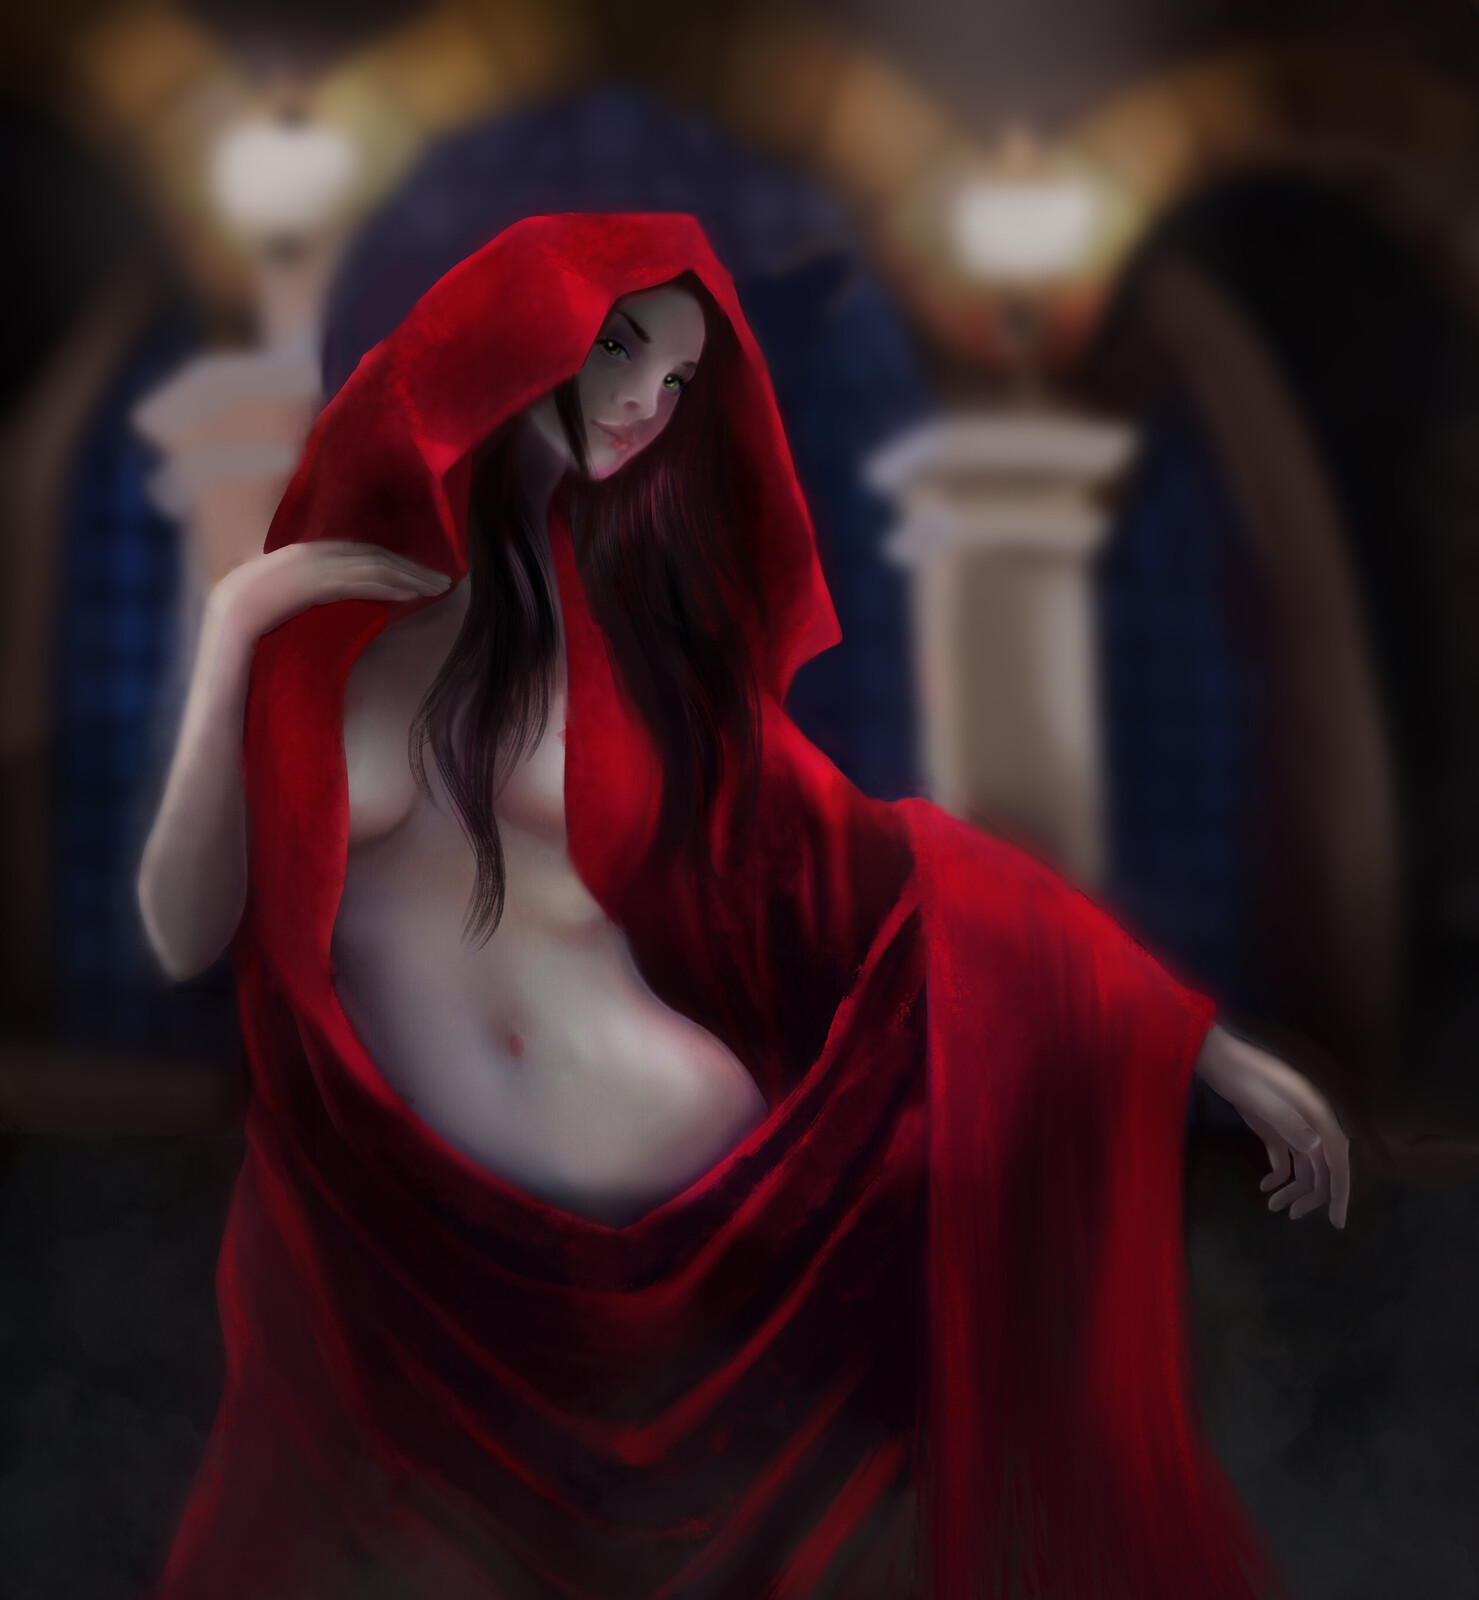 Girl in the Red robe